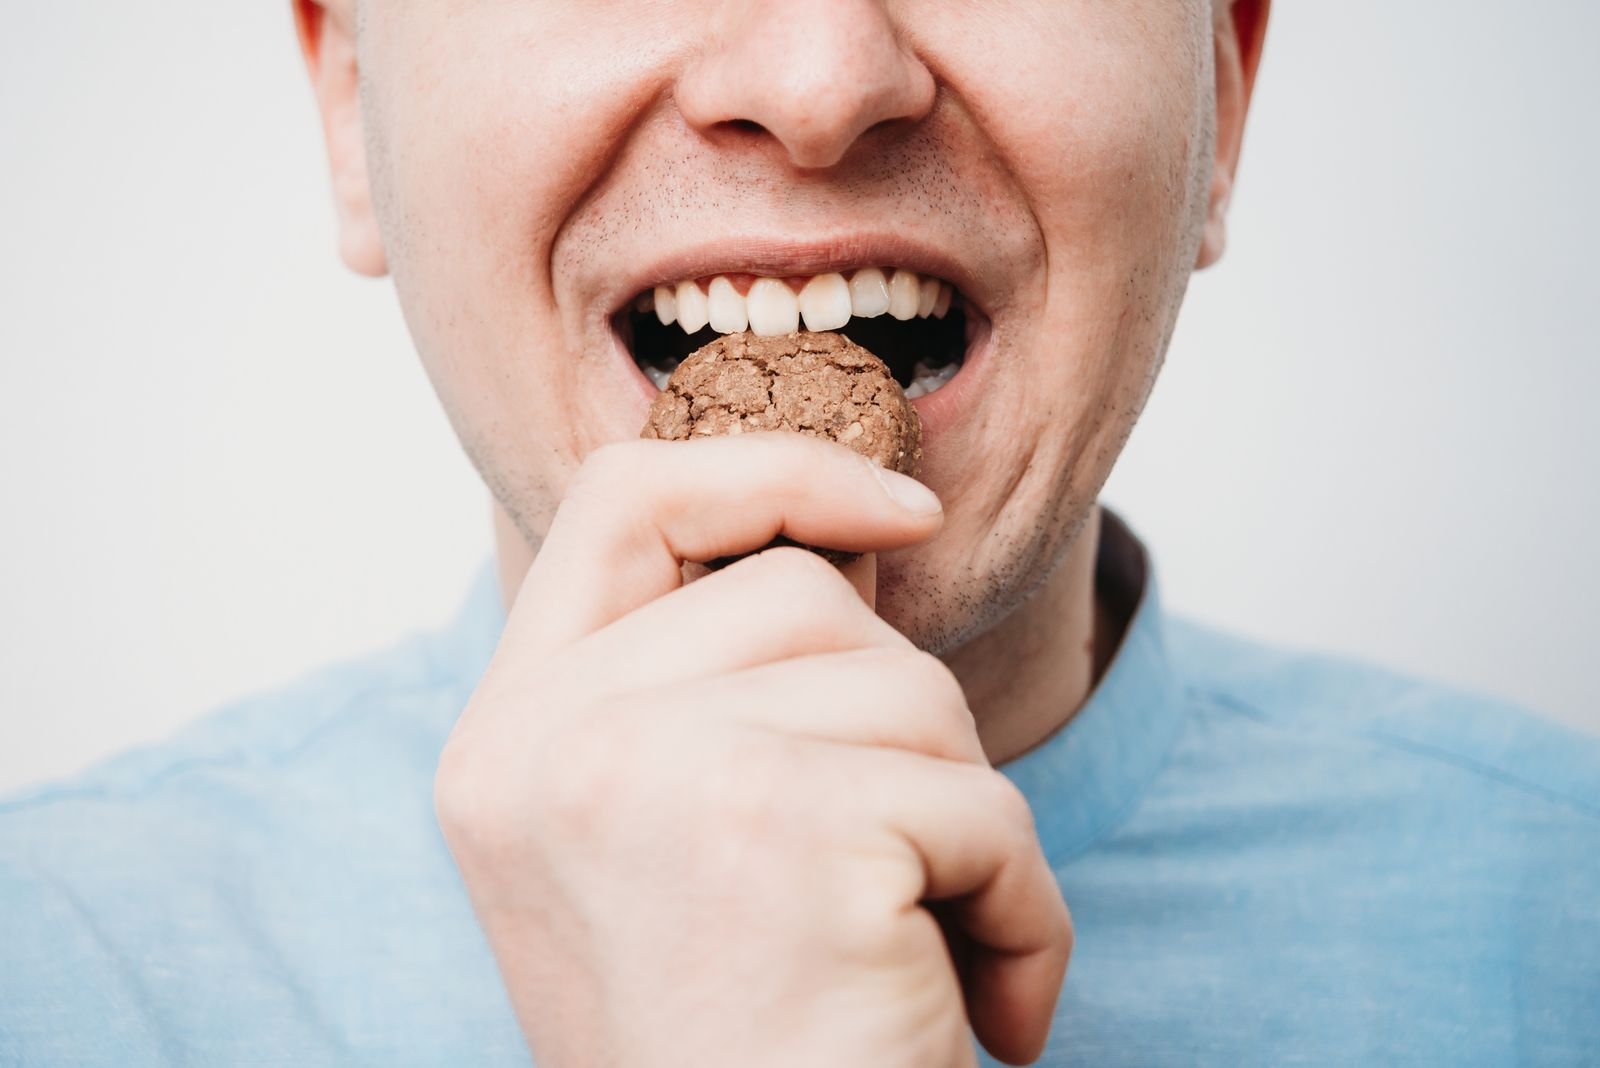 Close-Up Of Man Eating Cookie Against White Background